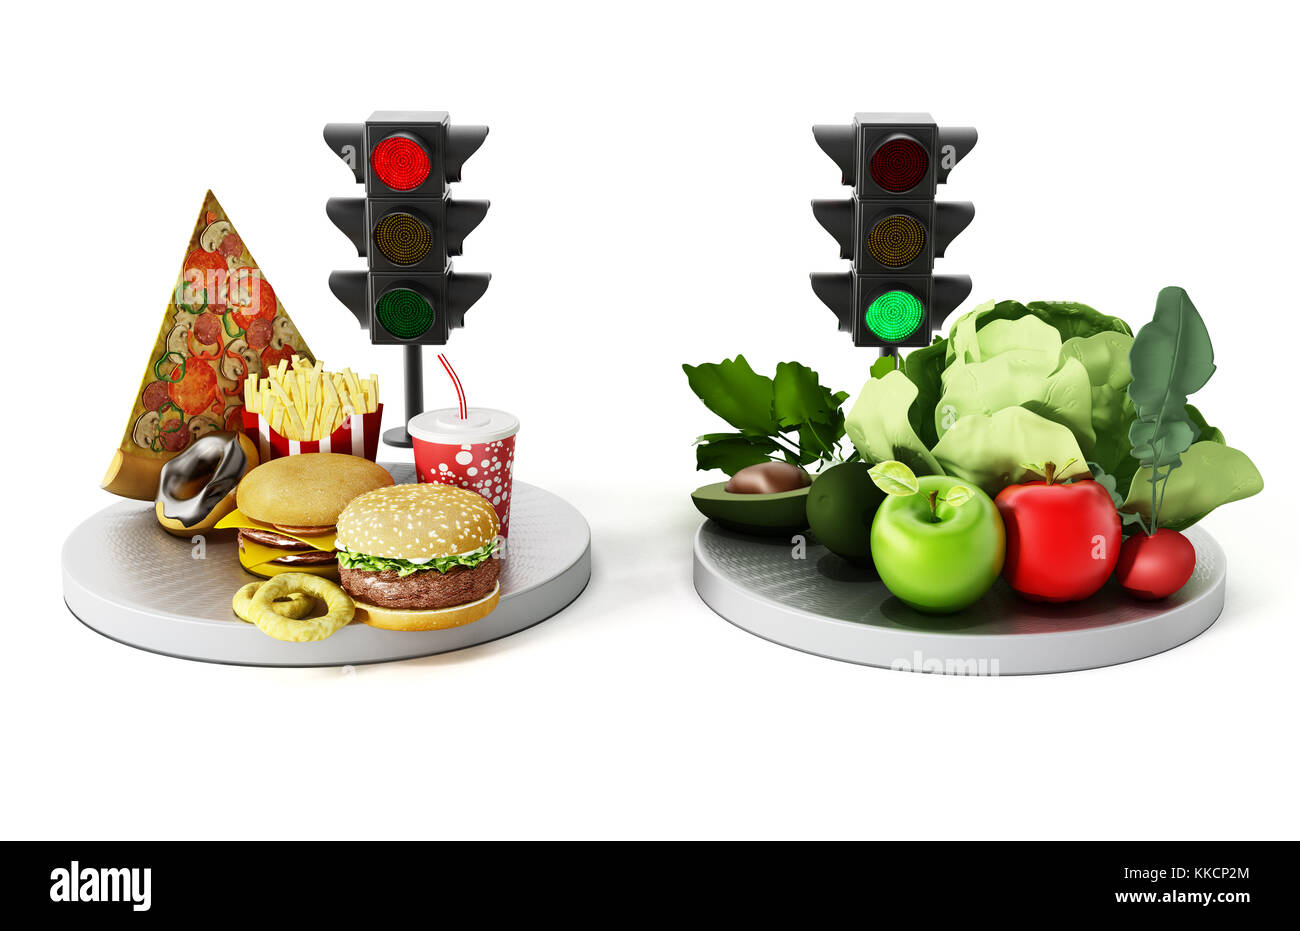 Green light for healthy food and red light for junk food. 3D illustration. - Stock Image